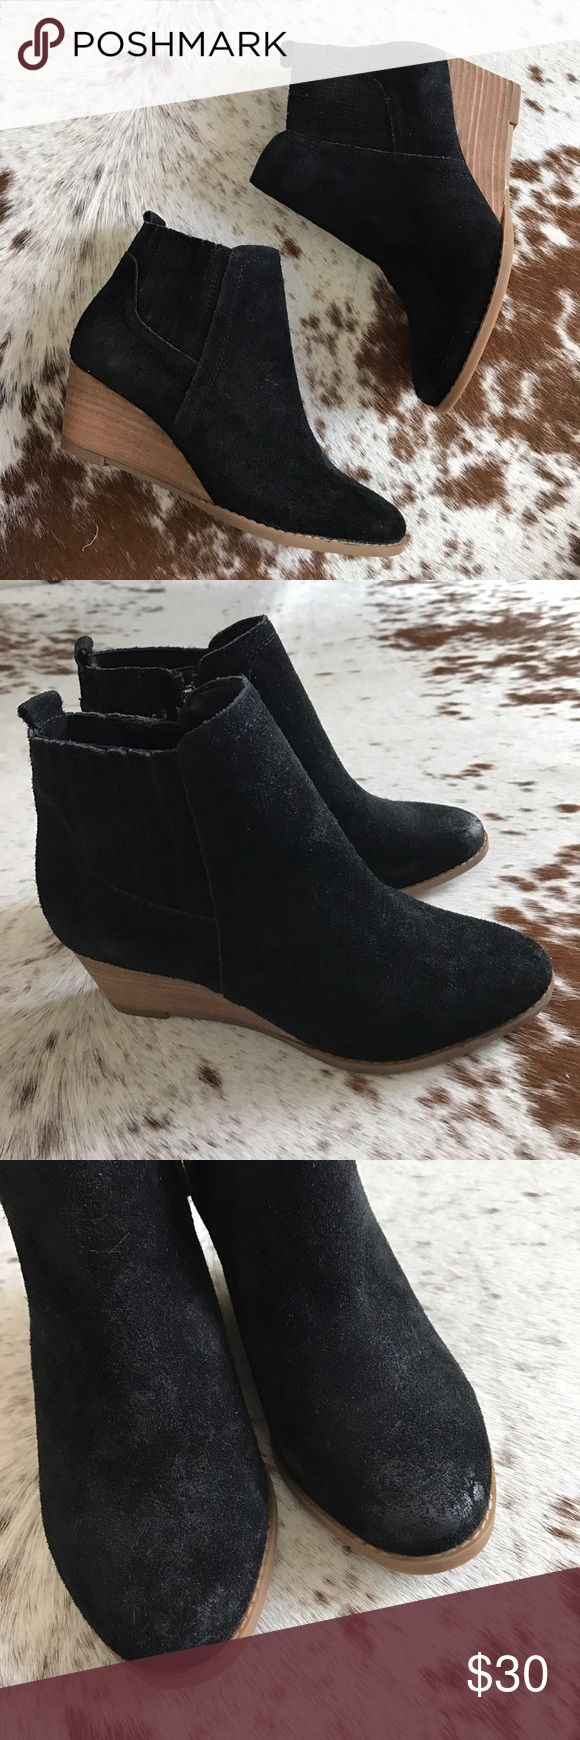 NEW Franco Sarto black suede wedge bootie 35.5 Franco Sarto Wayra wedge booties. Some of the suede looks worn but it came like this. Wooden wedge heel. Size 5.5. No box but they are brand new. Franco Sarto Shoes Ankle Boots & Booties